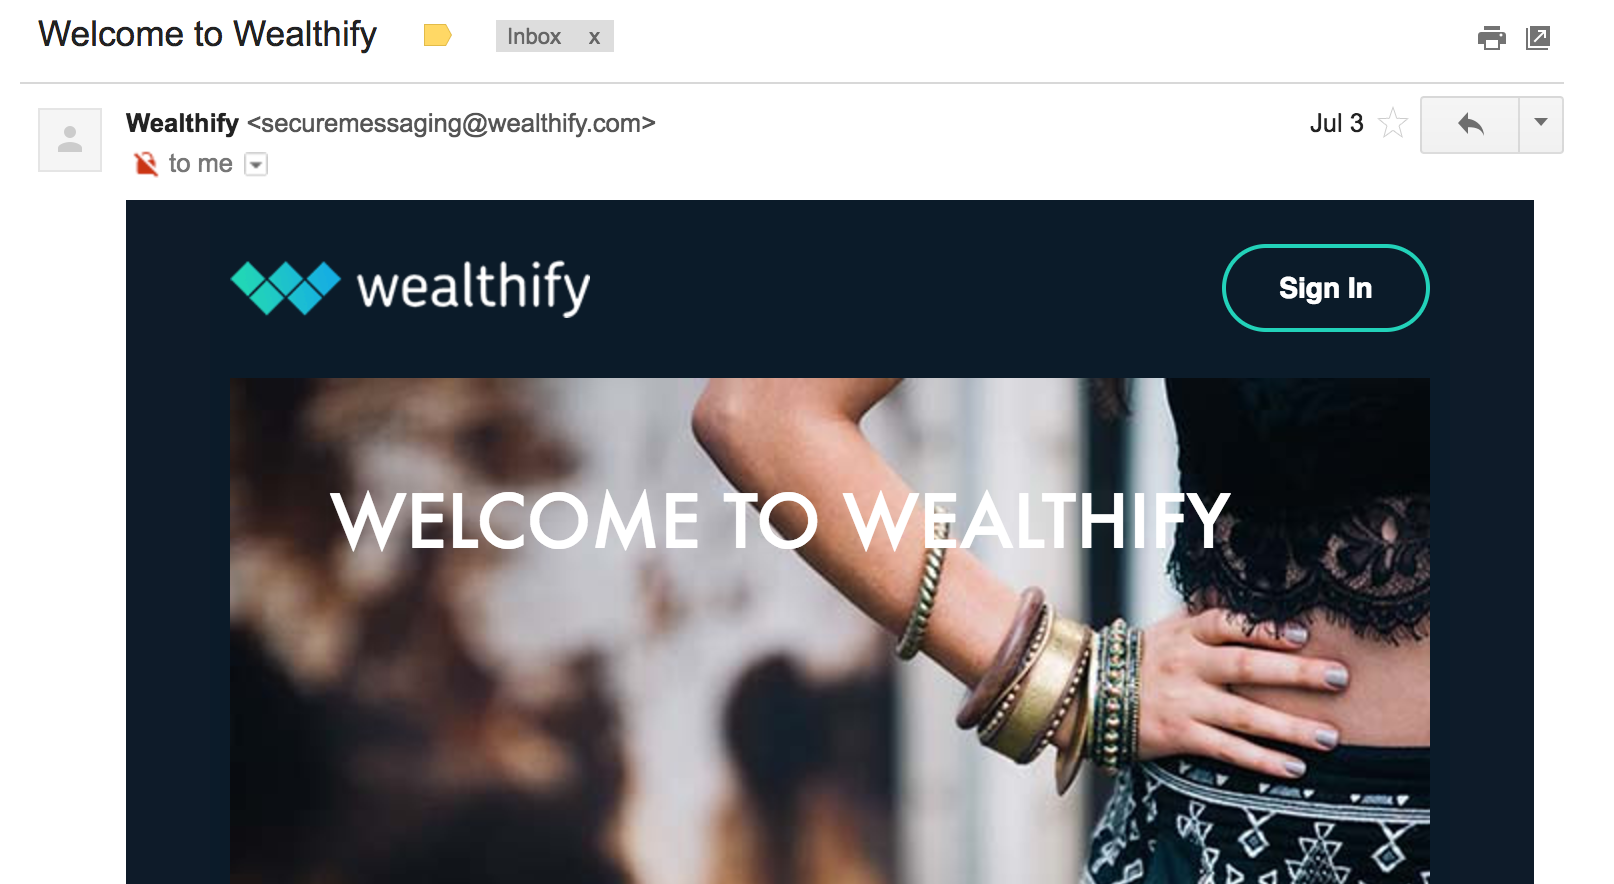 Wealthify email subject example